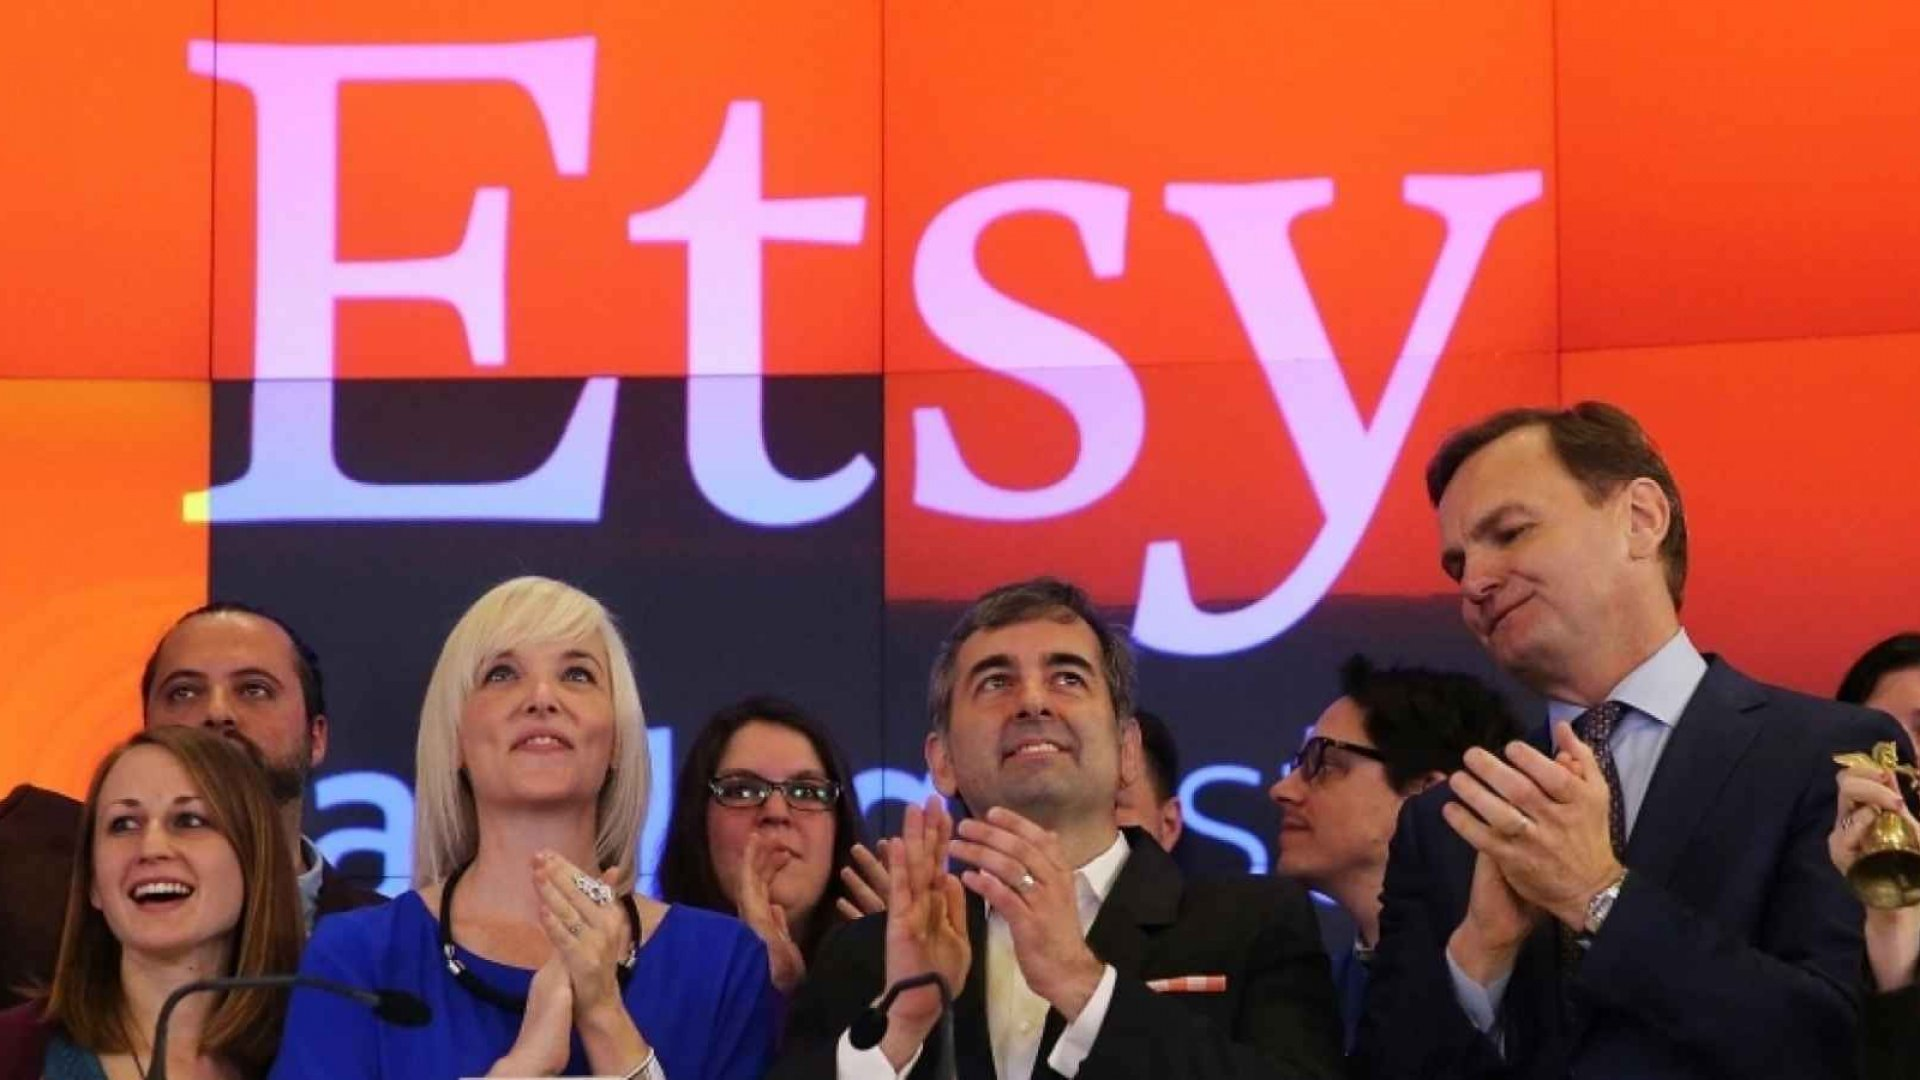 Bravo for Etsy, but Its Paid Parental Leave Policy Really Shouldn't Be Exceptional